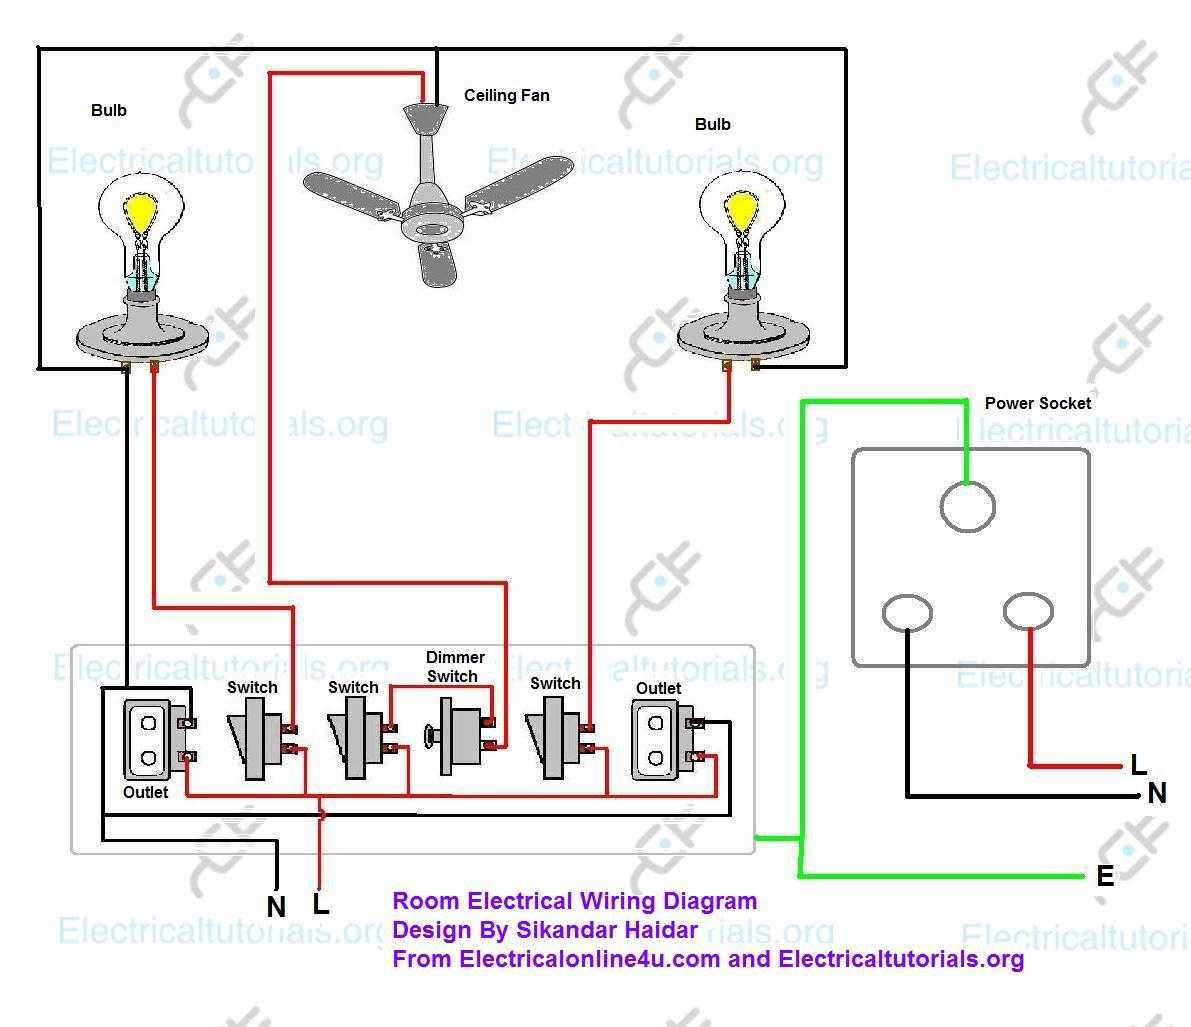 electric circuit drawing at getdrawings com free for personal use rh getdrawings com Wiring Photovoltaic Cells Basic Wiring Circuits Symbols